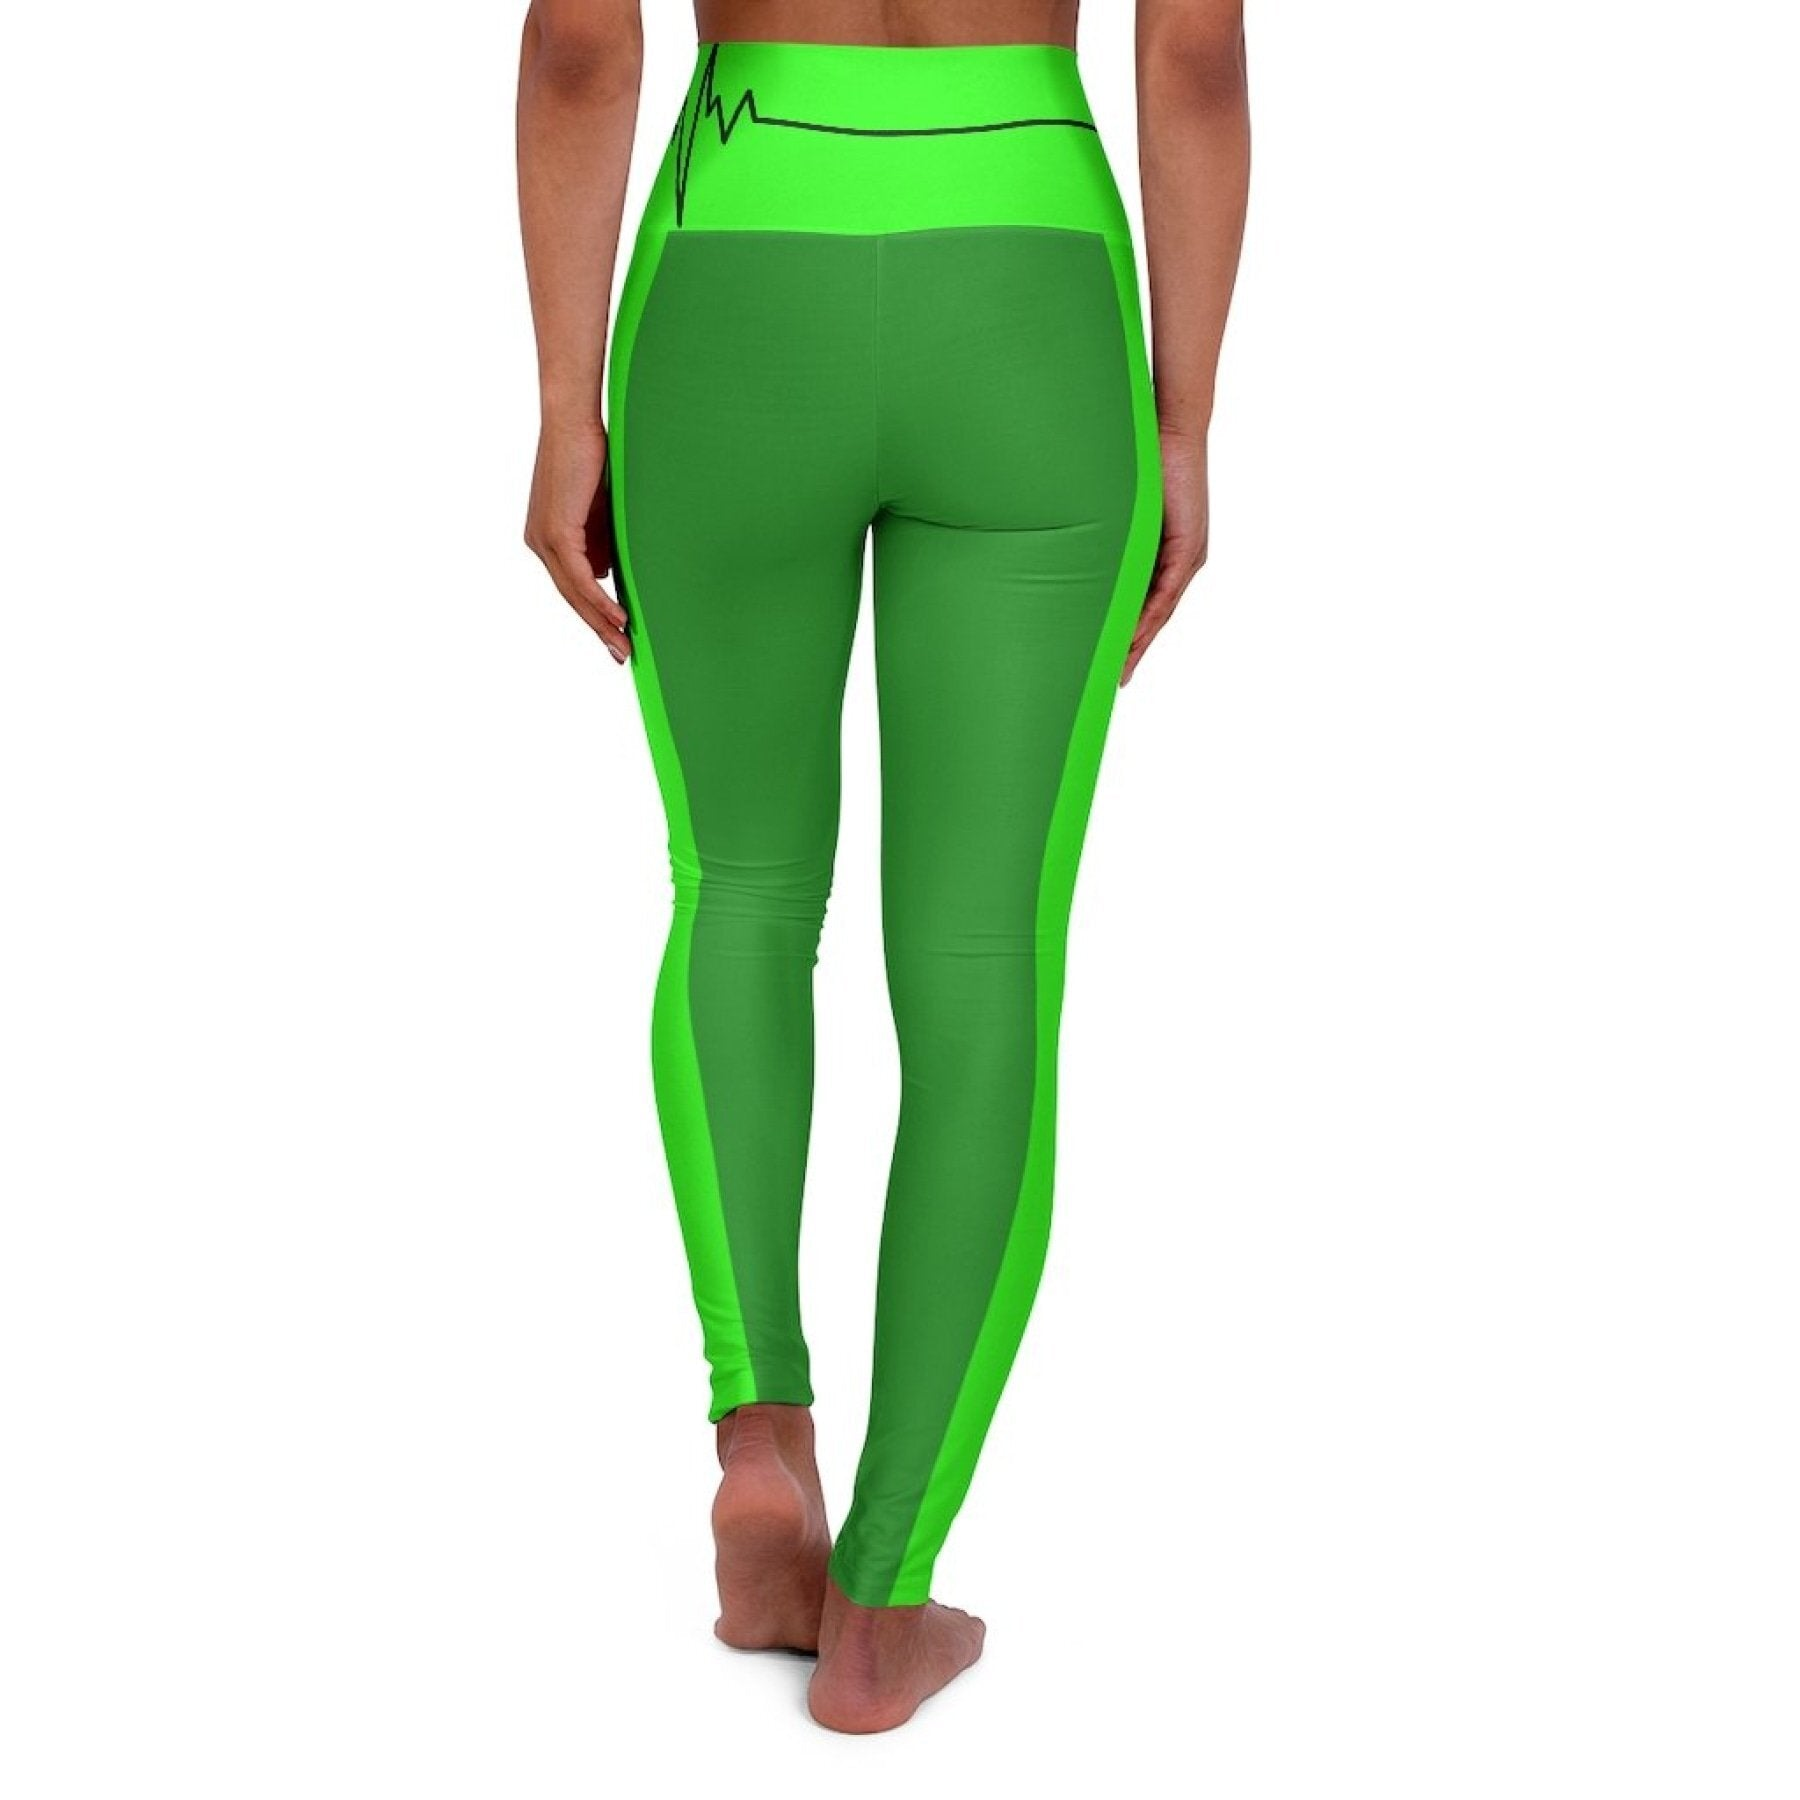 High Waisted Yoga Leggings, Forest Green and Neon Green Black Bordered Beating Heart Sports Pants